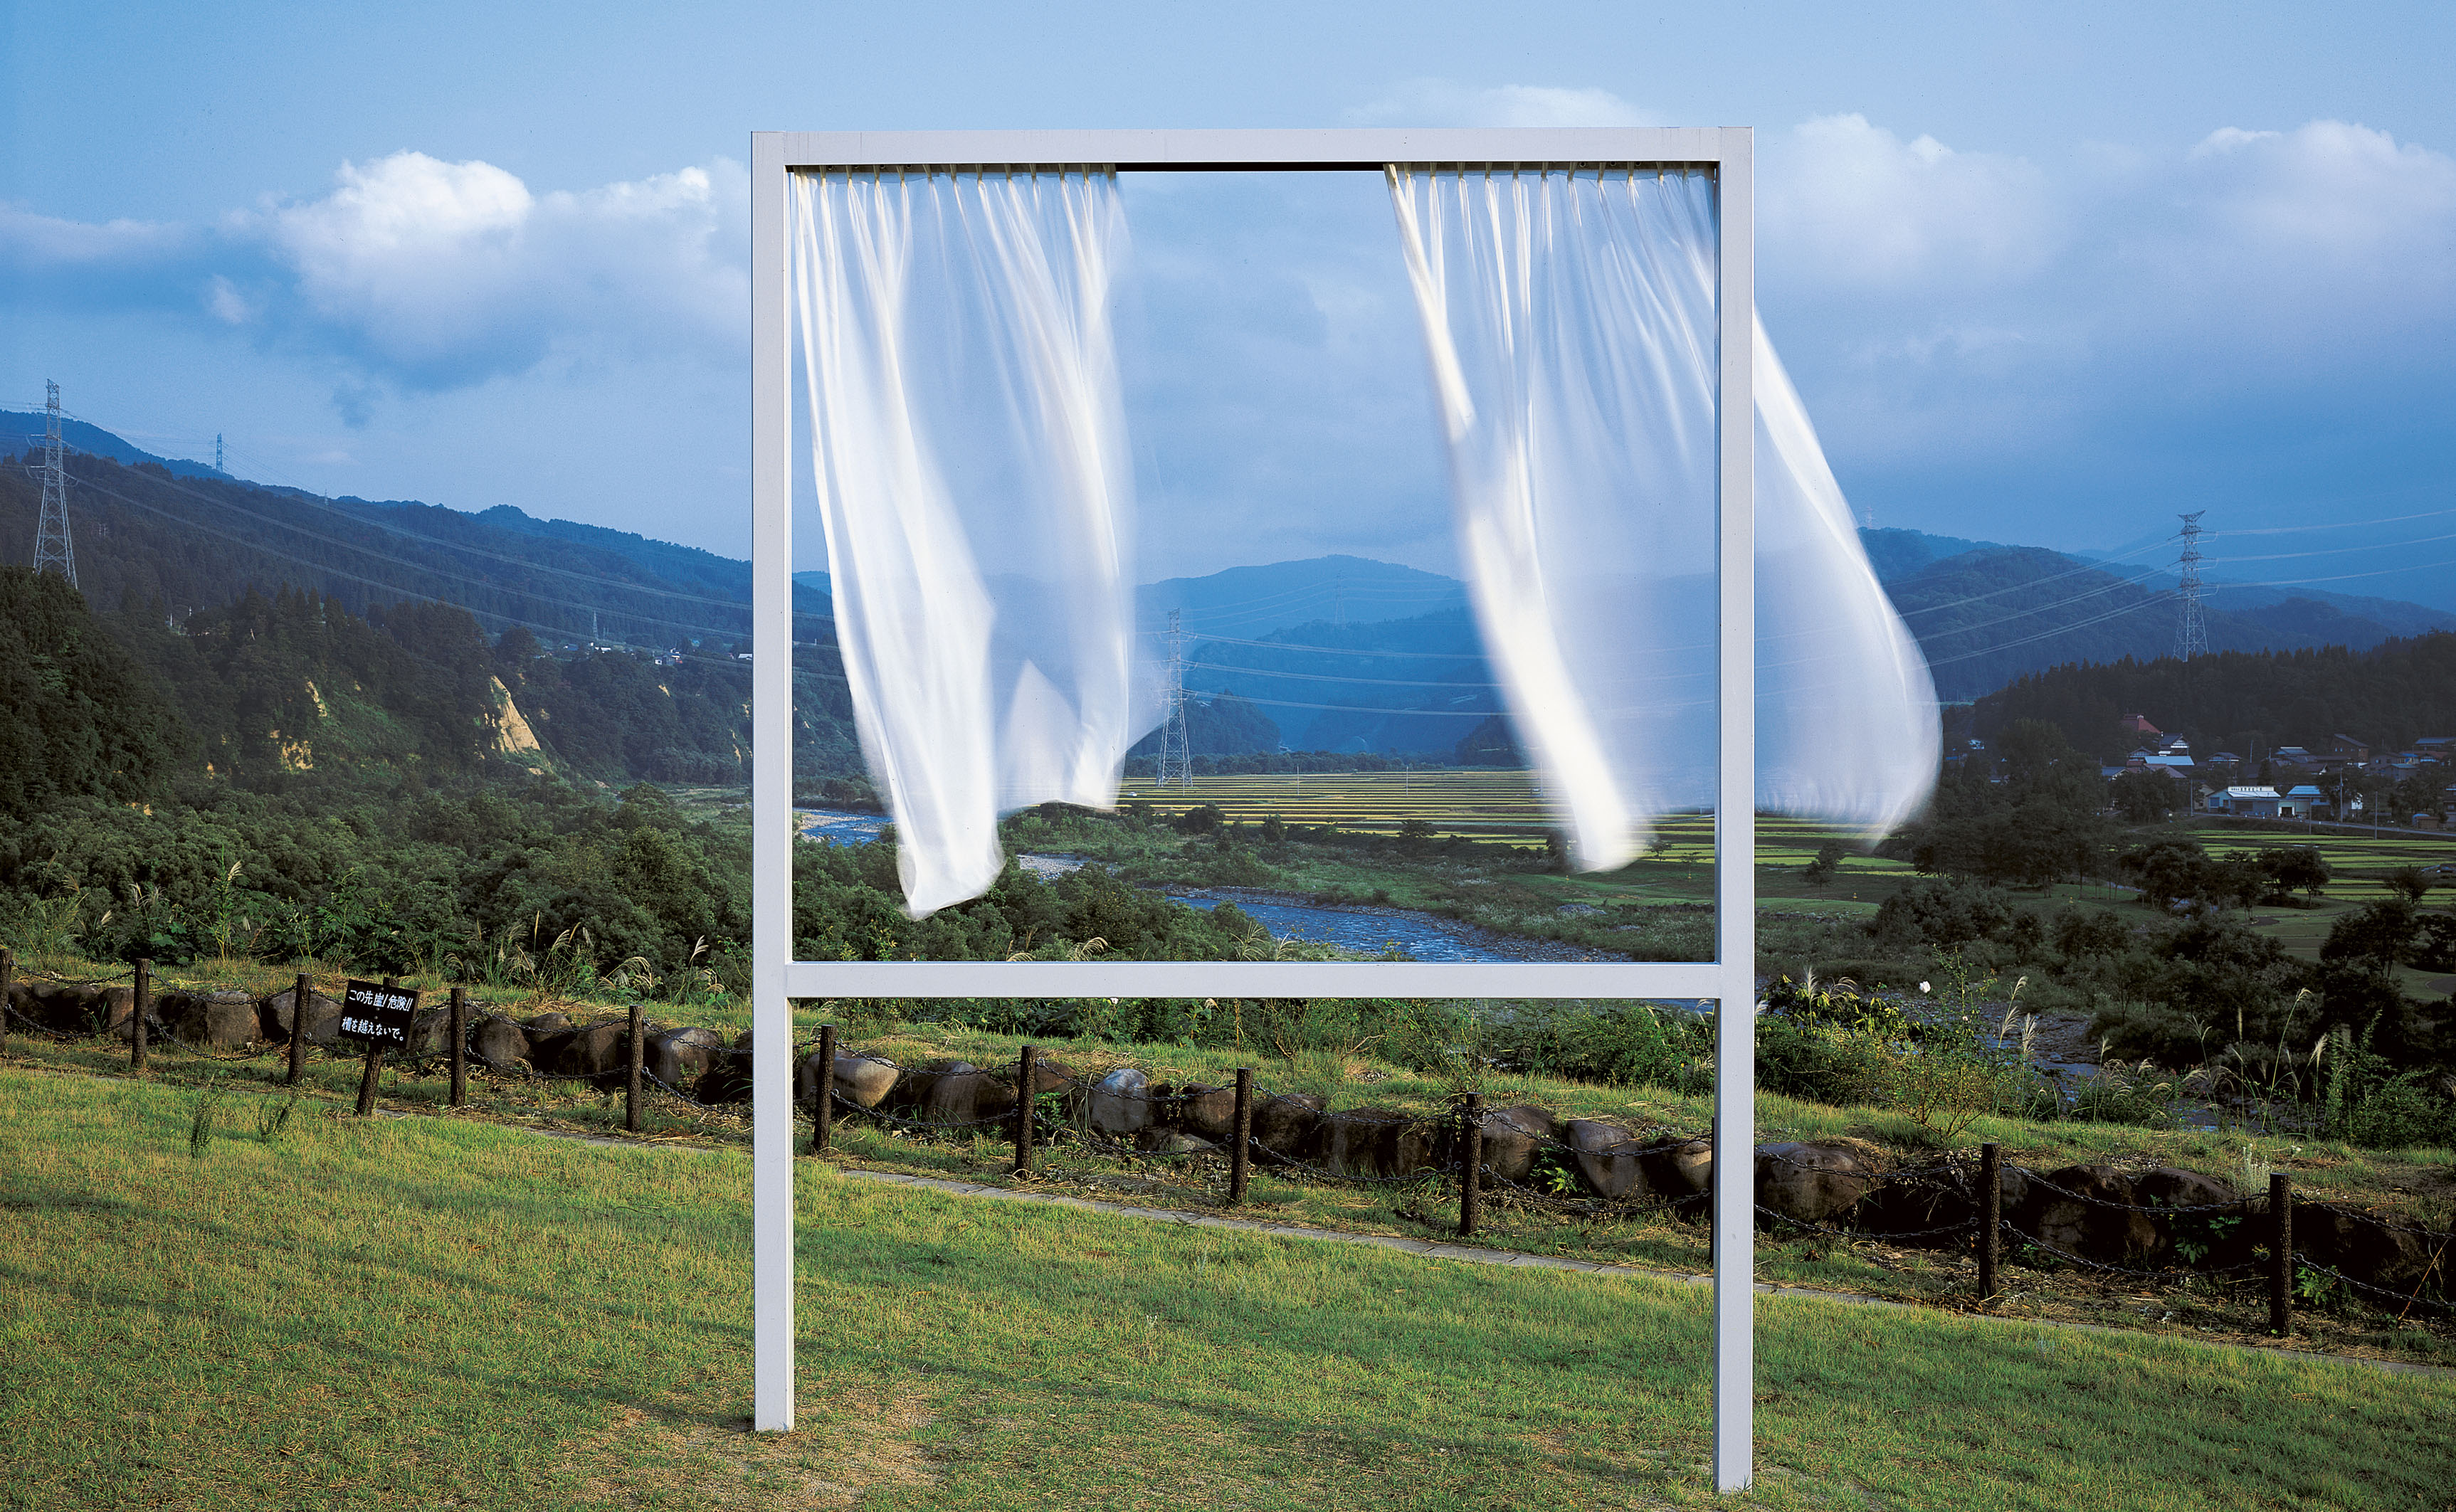 'For Lots of Lost Windows' (2006-ongoing) by Akiko Utsumi | T. KURATANI